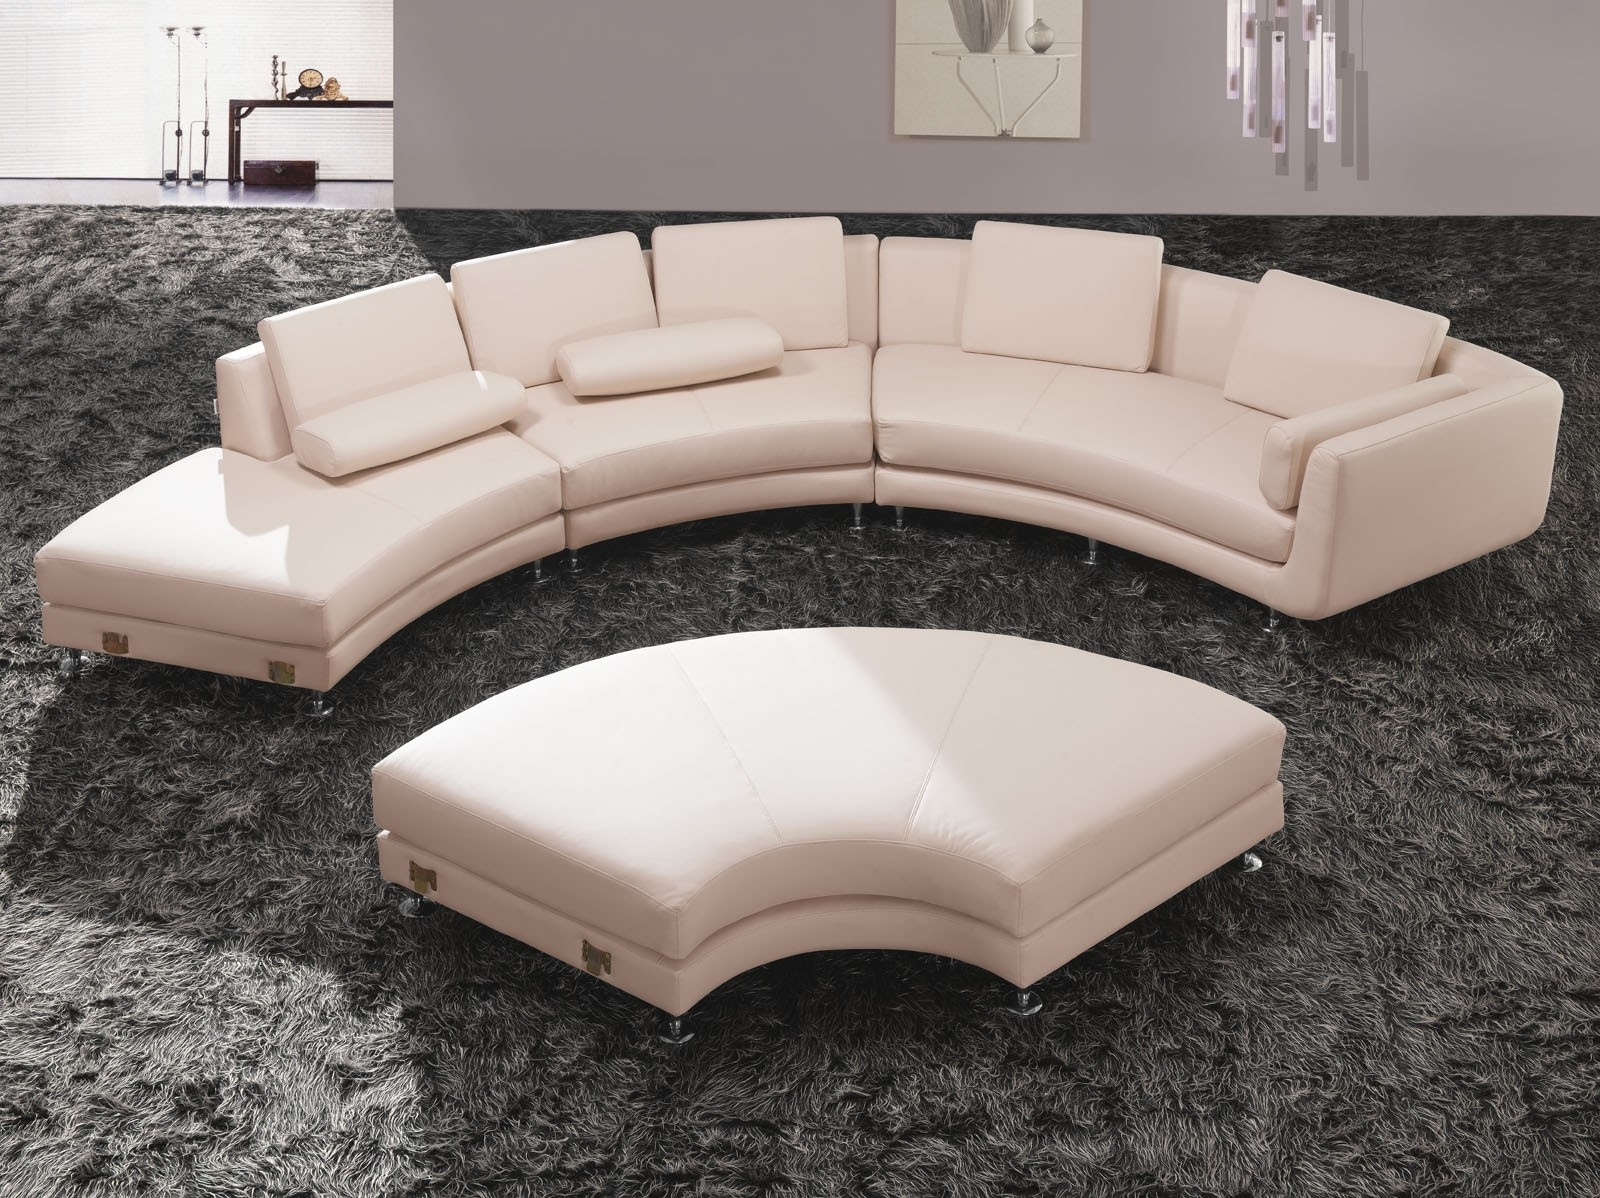 Most Current Circular Sofa Chairs Inside Sofa : Glamorous Round Sectional Sofa Bed Curved Leather Tufted (View 8 of 15)